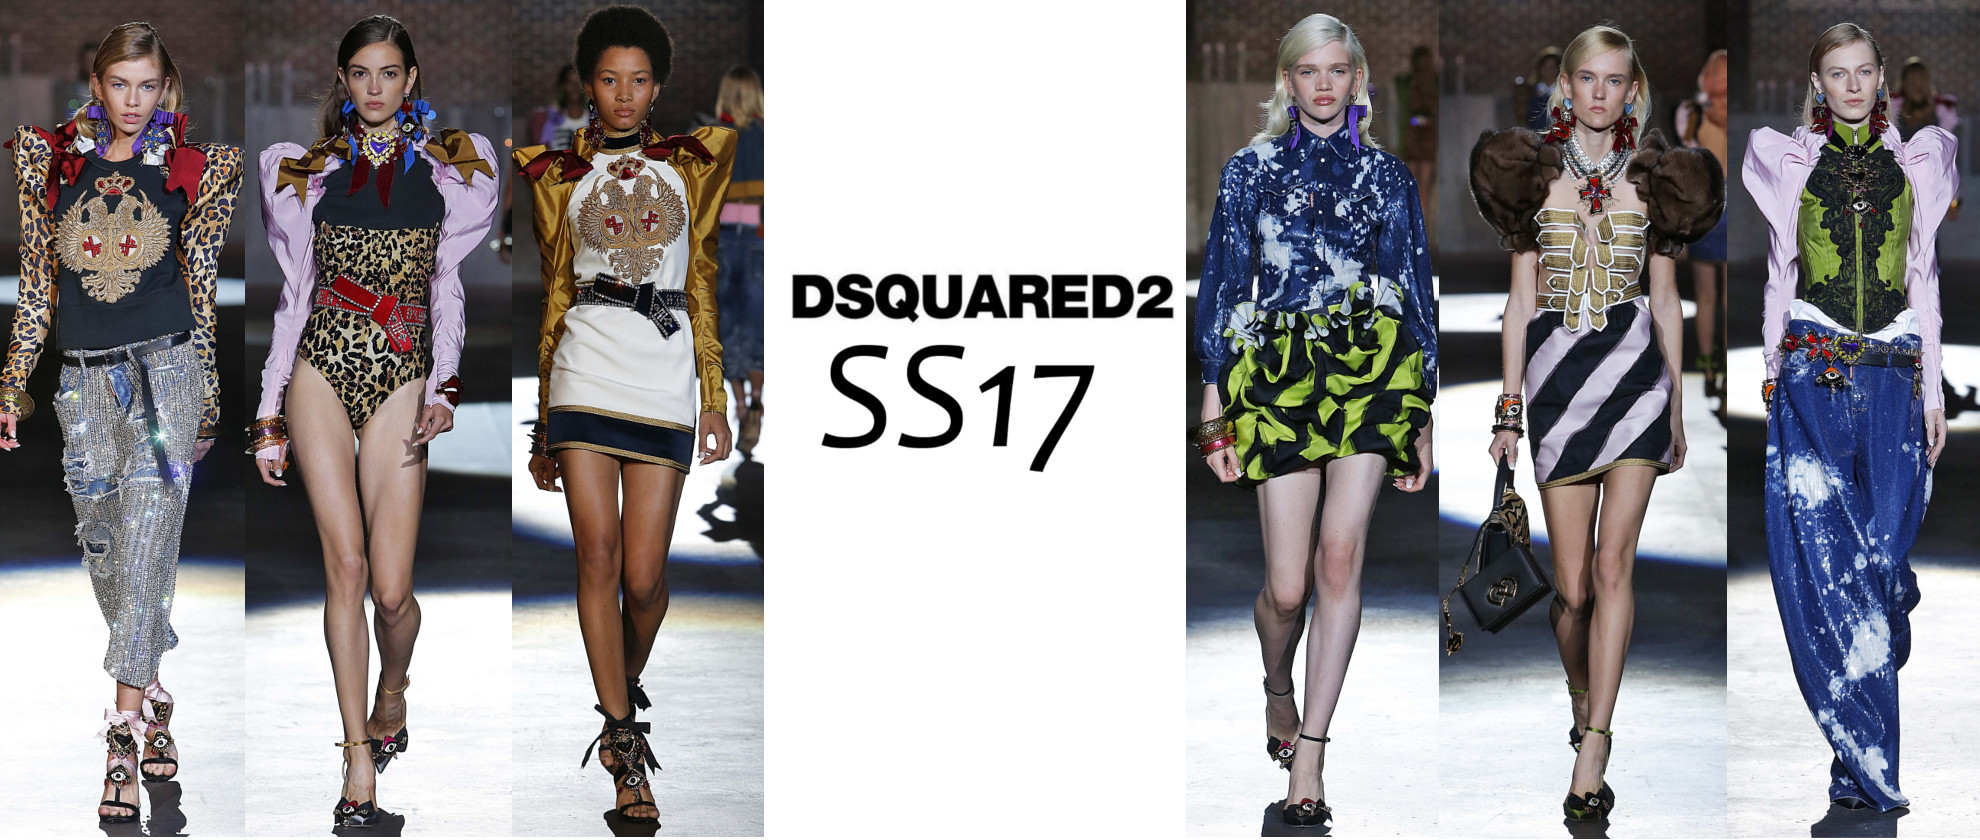 DSquared2's 80s Inspired Women's SS17 Collection